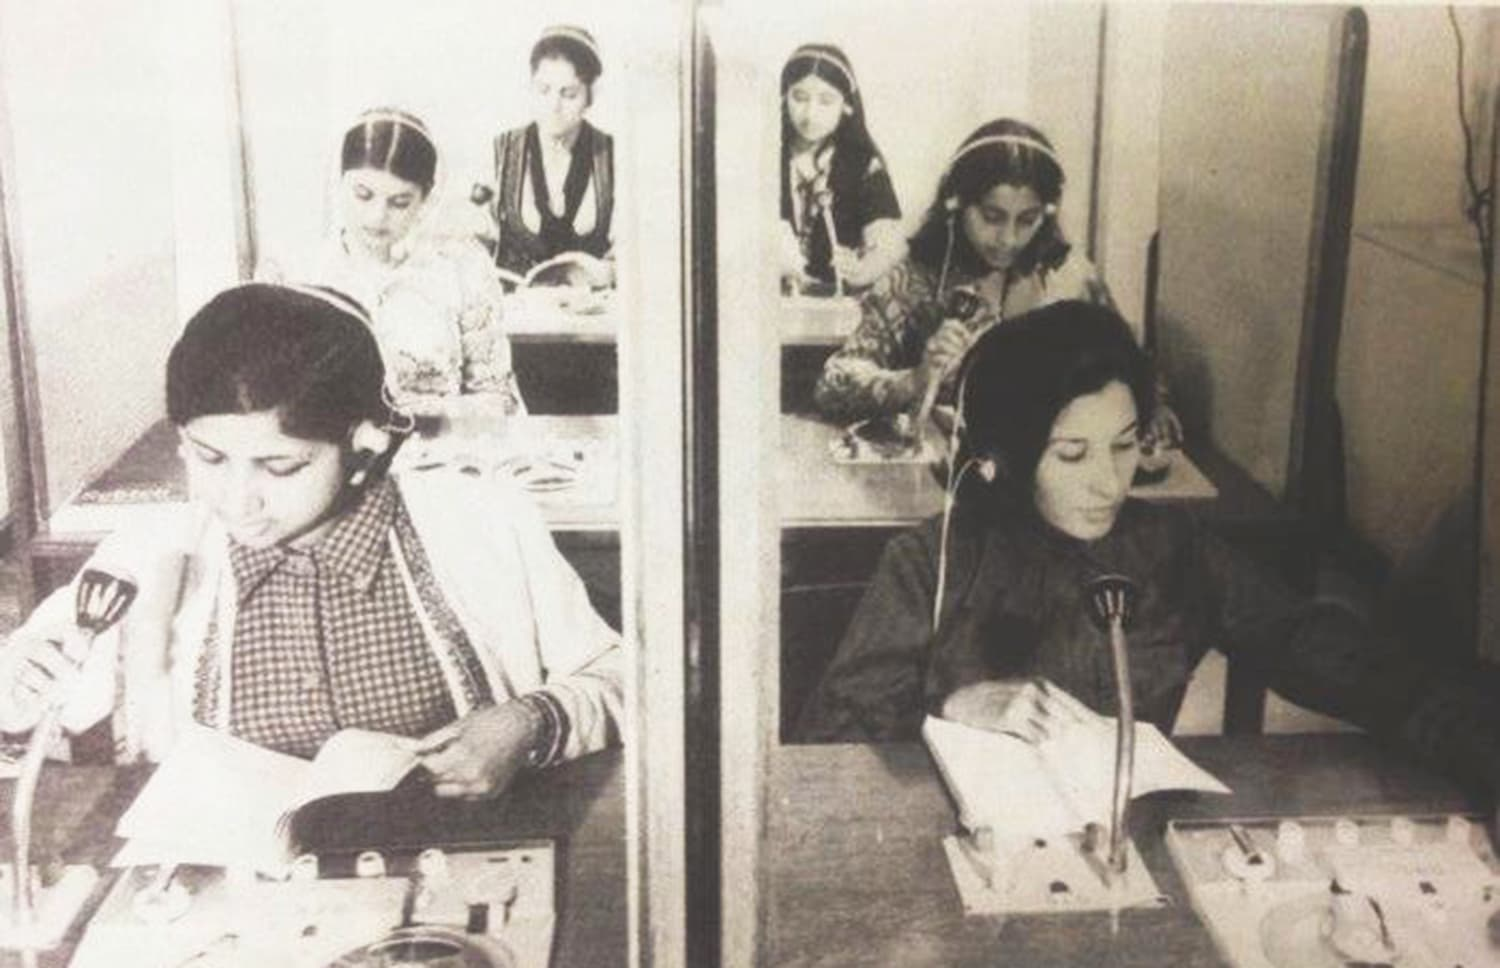 Pakistan International Airlines' airhostesses receiving lessons in English and French in Karachi in 1975.